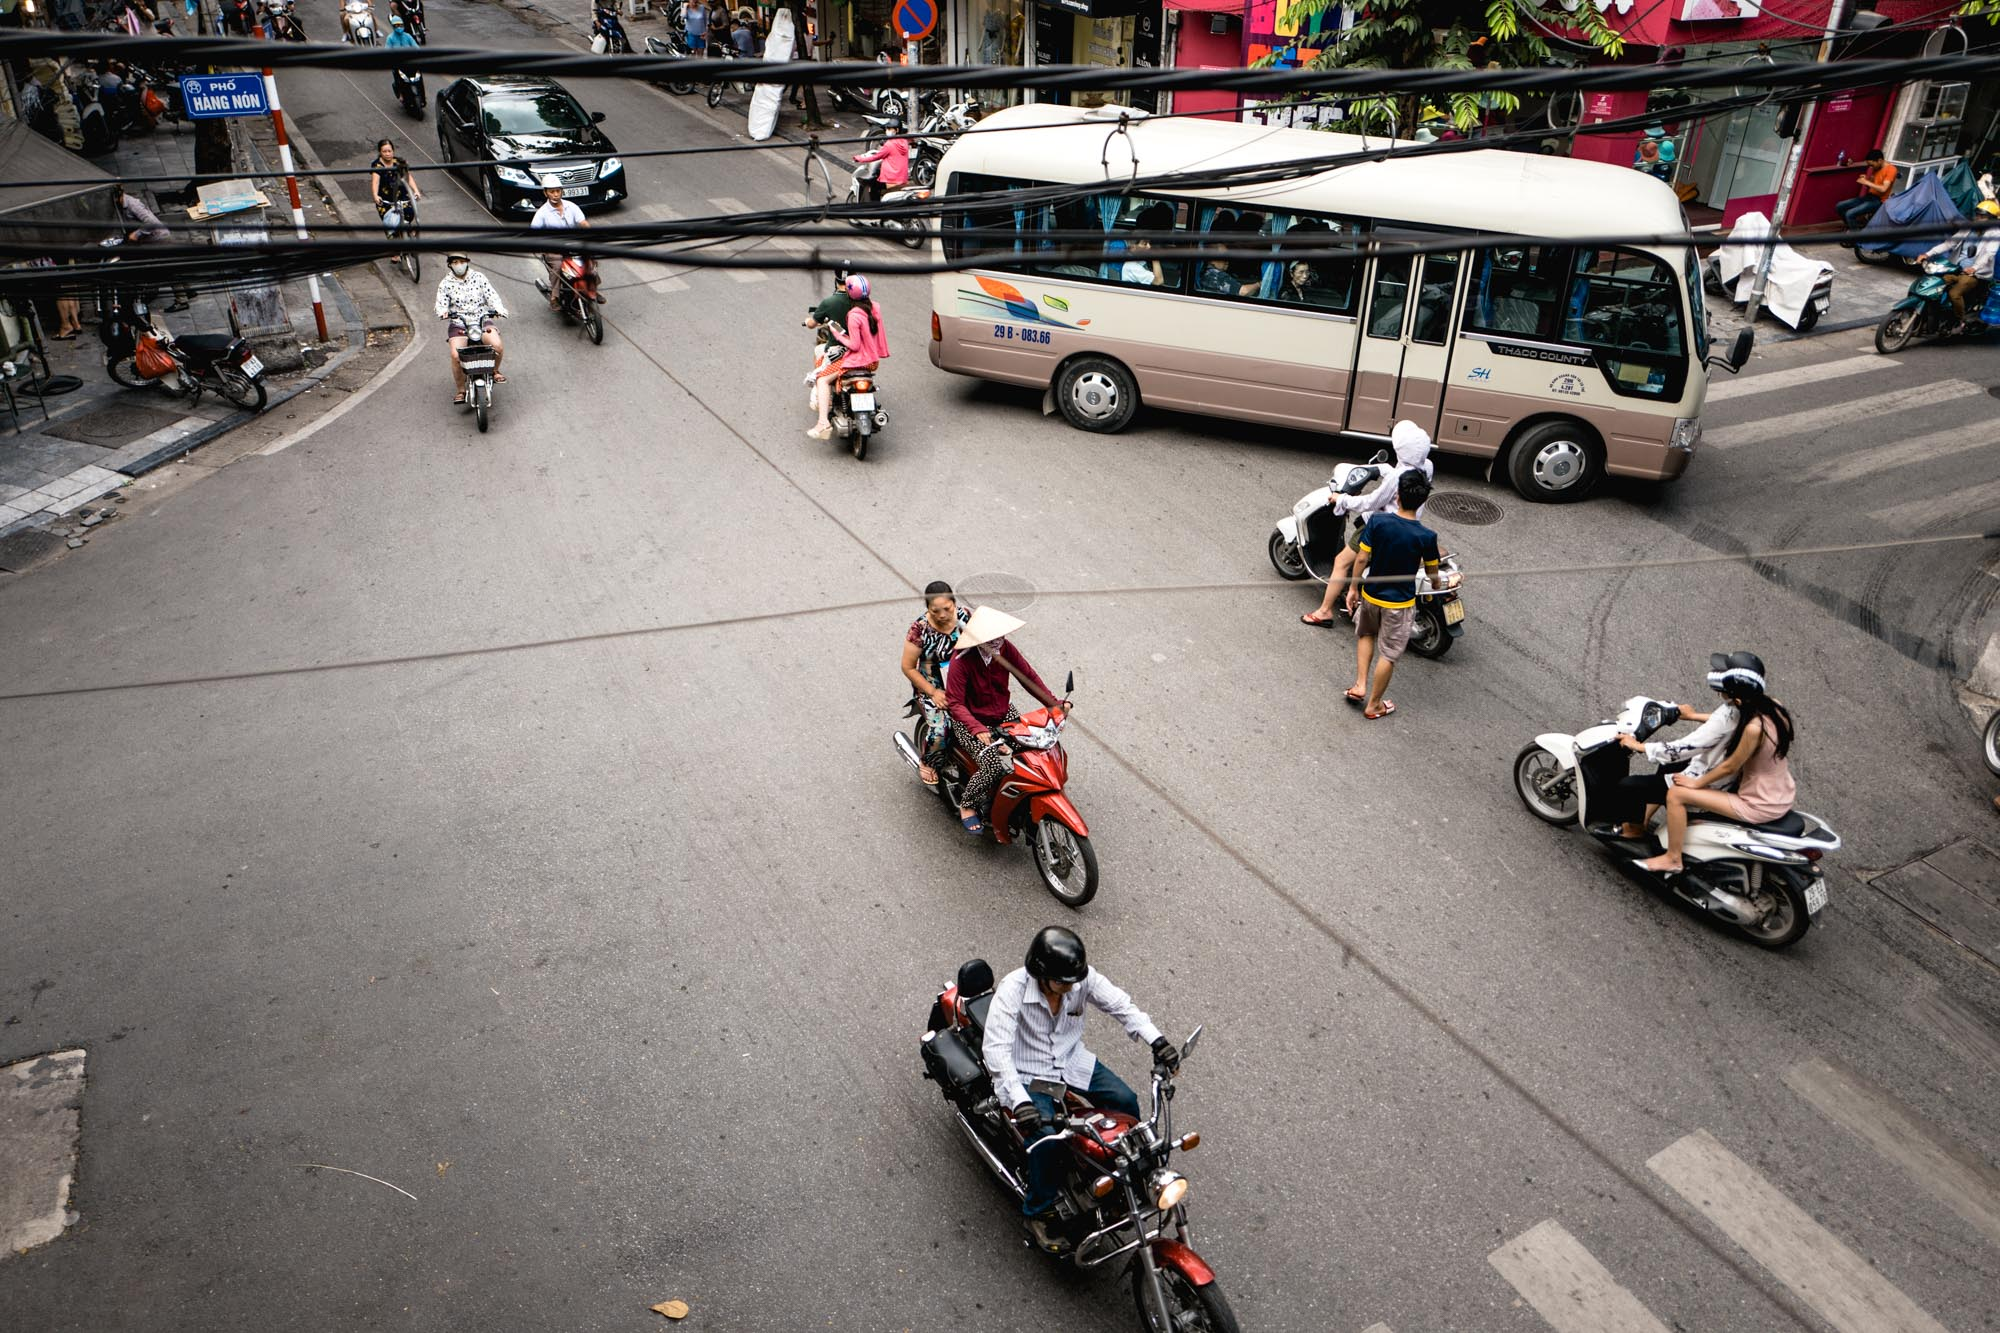 Hanoi, Vietnam - Circulation